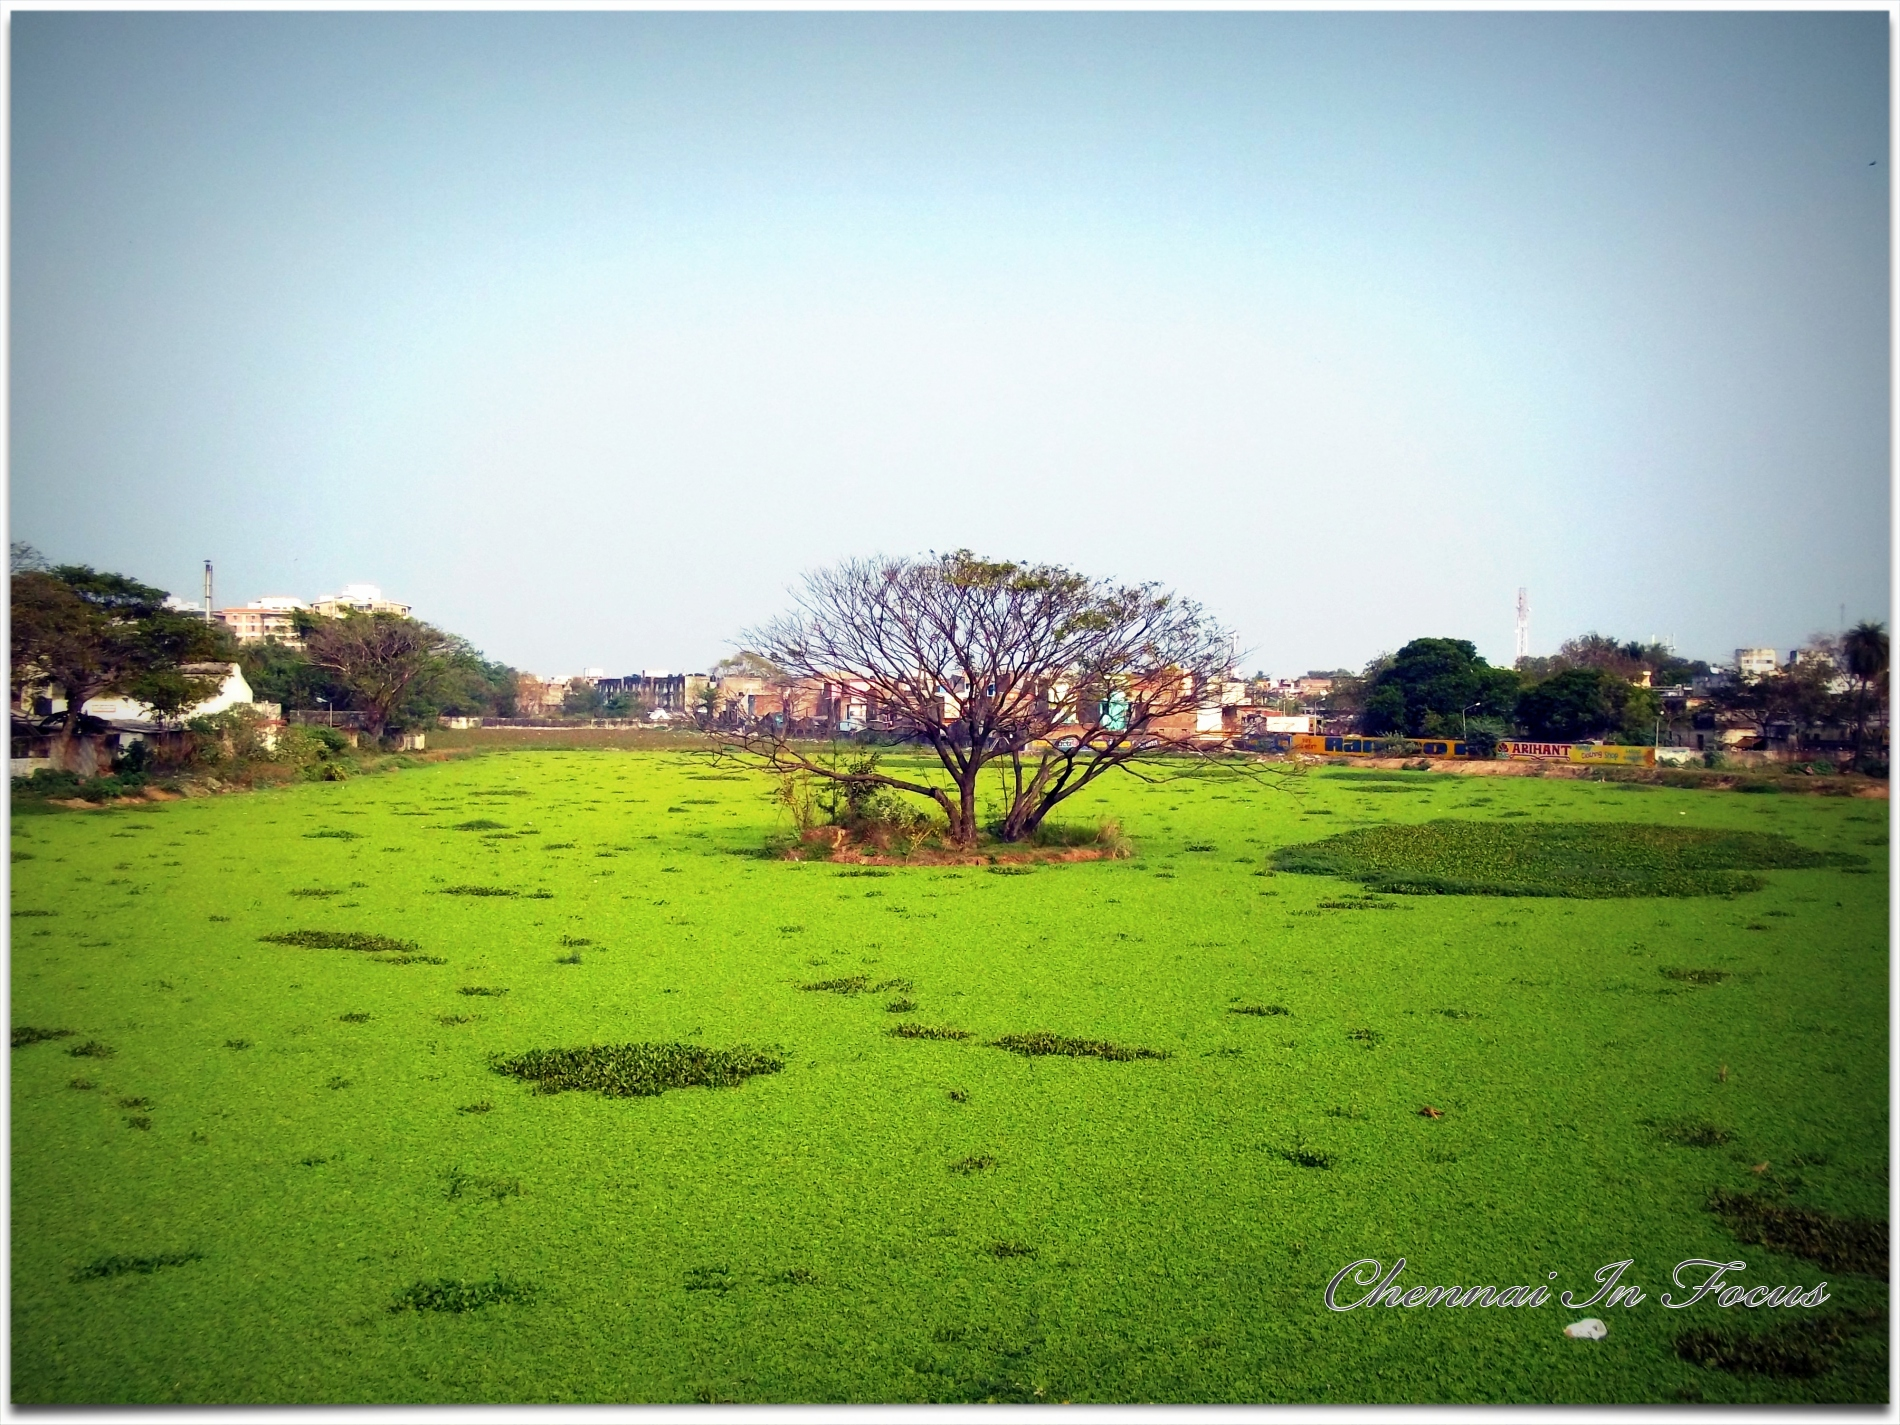 Chetpet Lake - Chennai In Focus